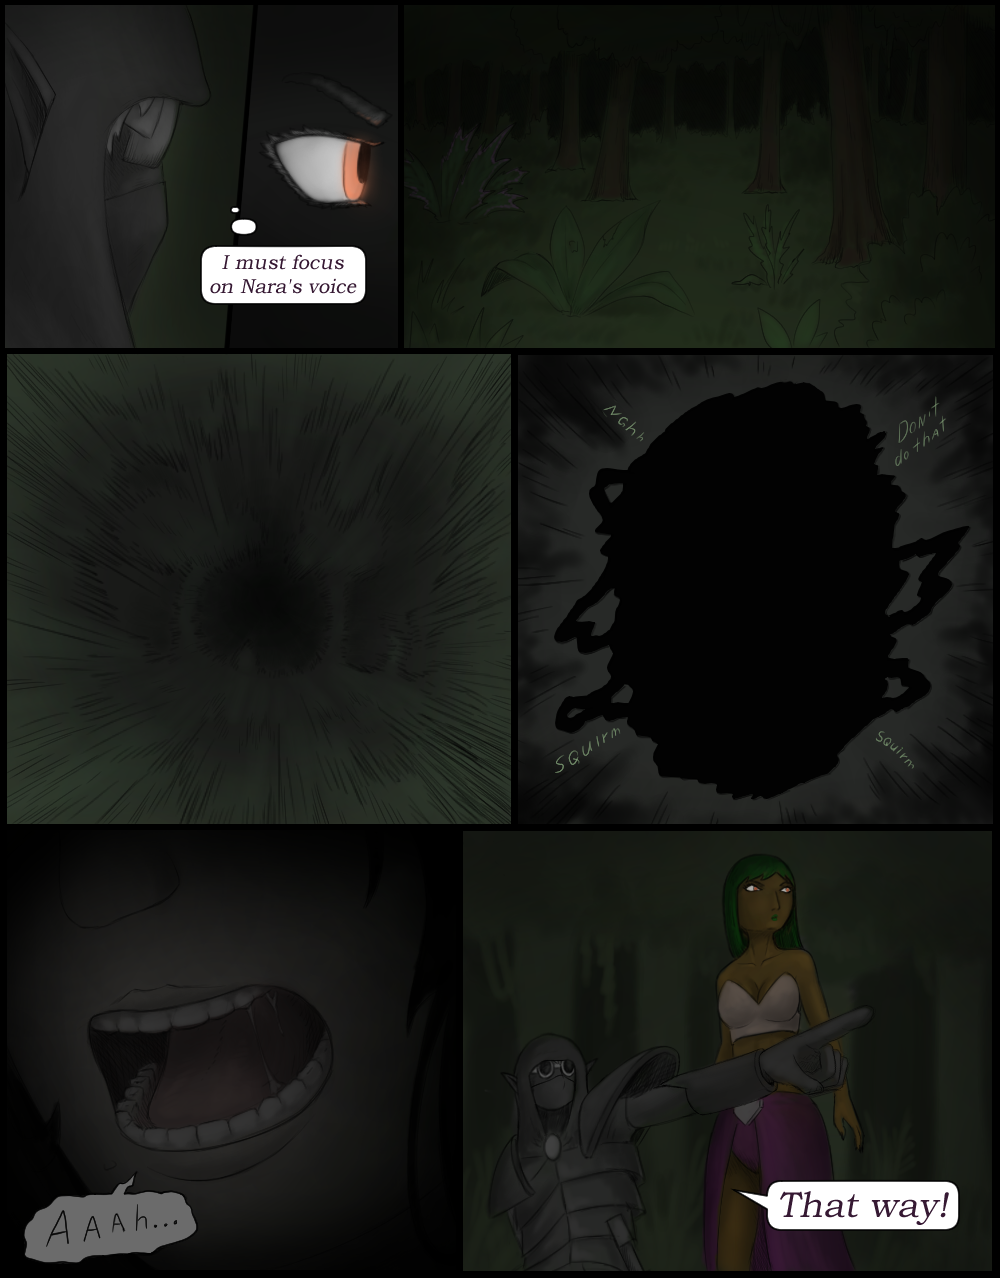 Page 34 - The right direction